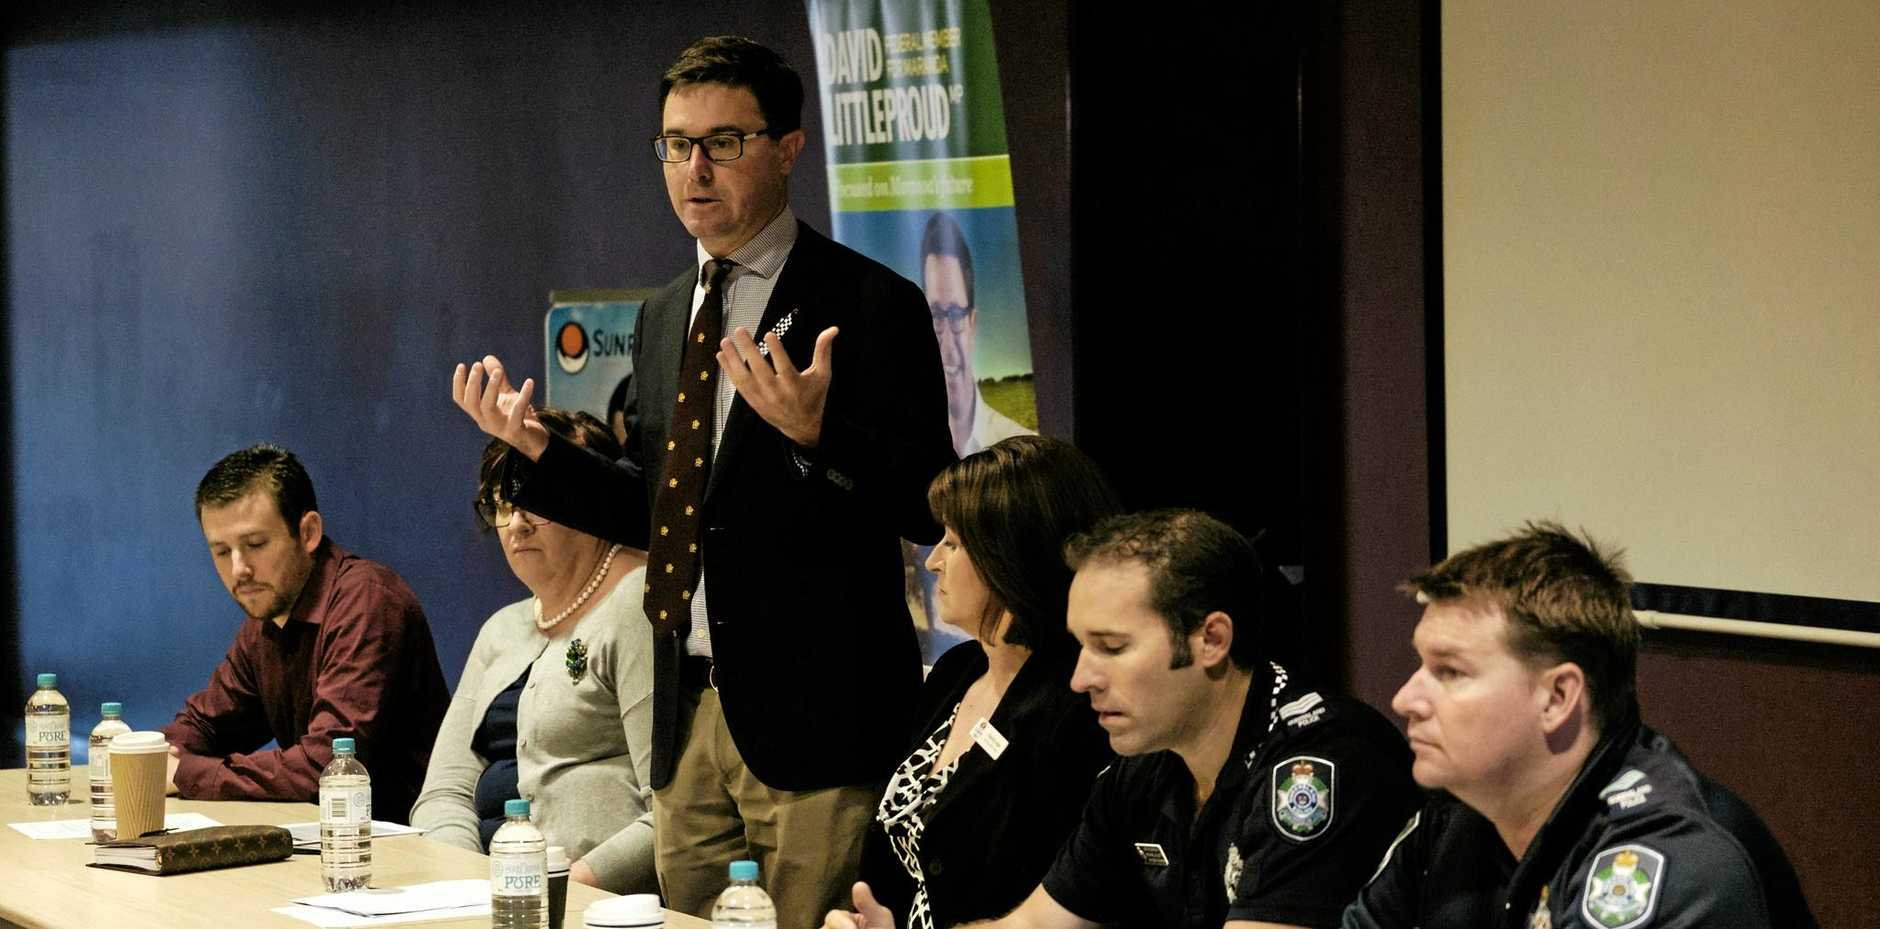 WE NEED TO TALK: David Littleproud opens the community ice forum at the Chinchilla Cultural Centre on Monday morning.